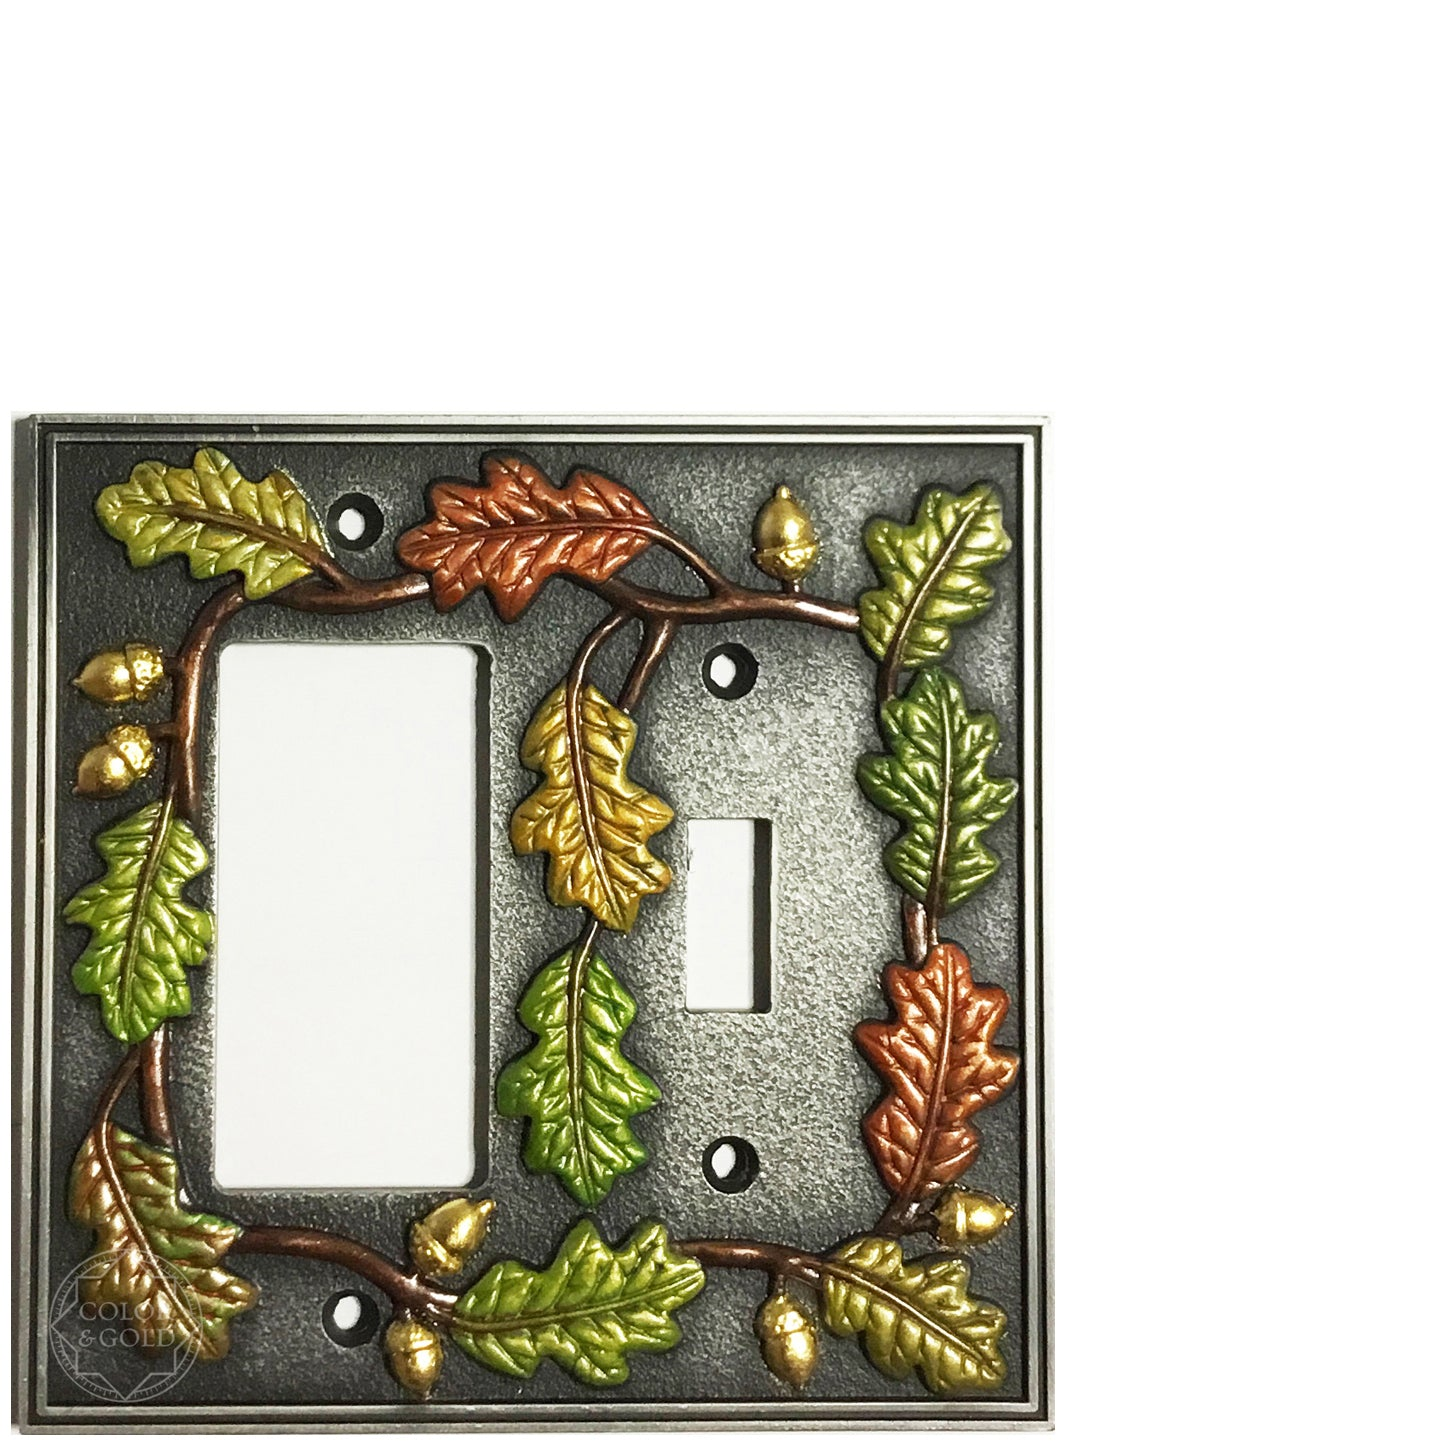 "One-of-a-Kind oak design 24 kt gold gilded & painted toggle & switch plate, 4 15/16"" x 4 7/8"" - Color & Gold LLC © Bridgette Kelling"